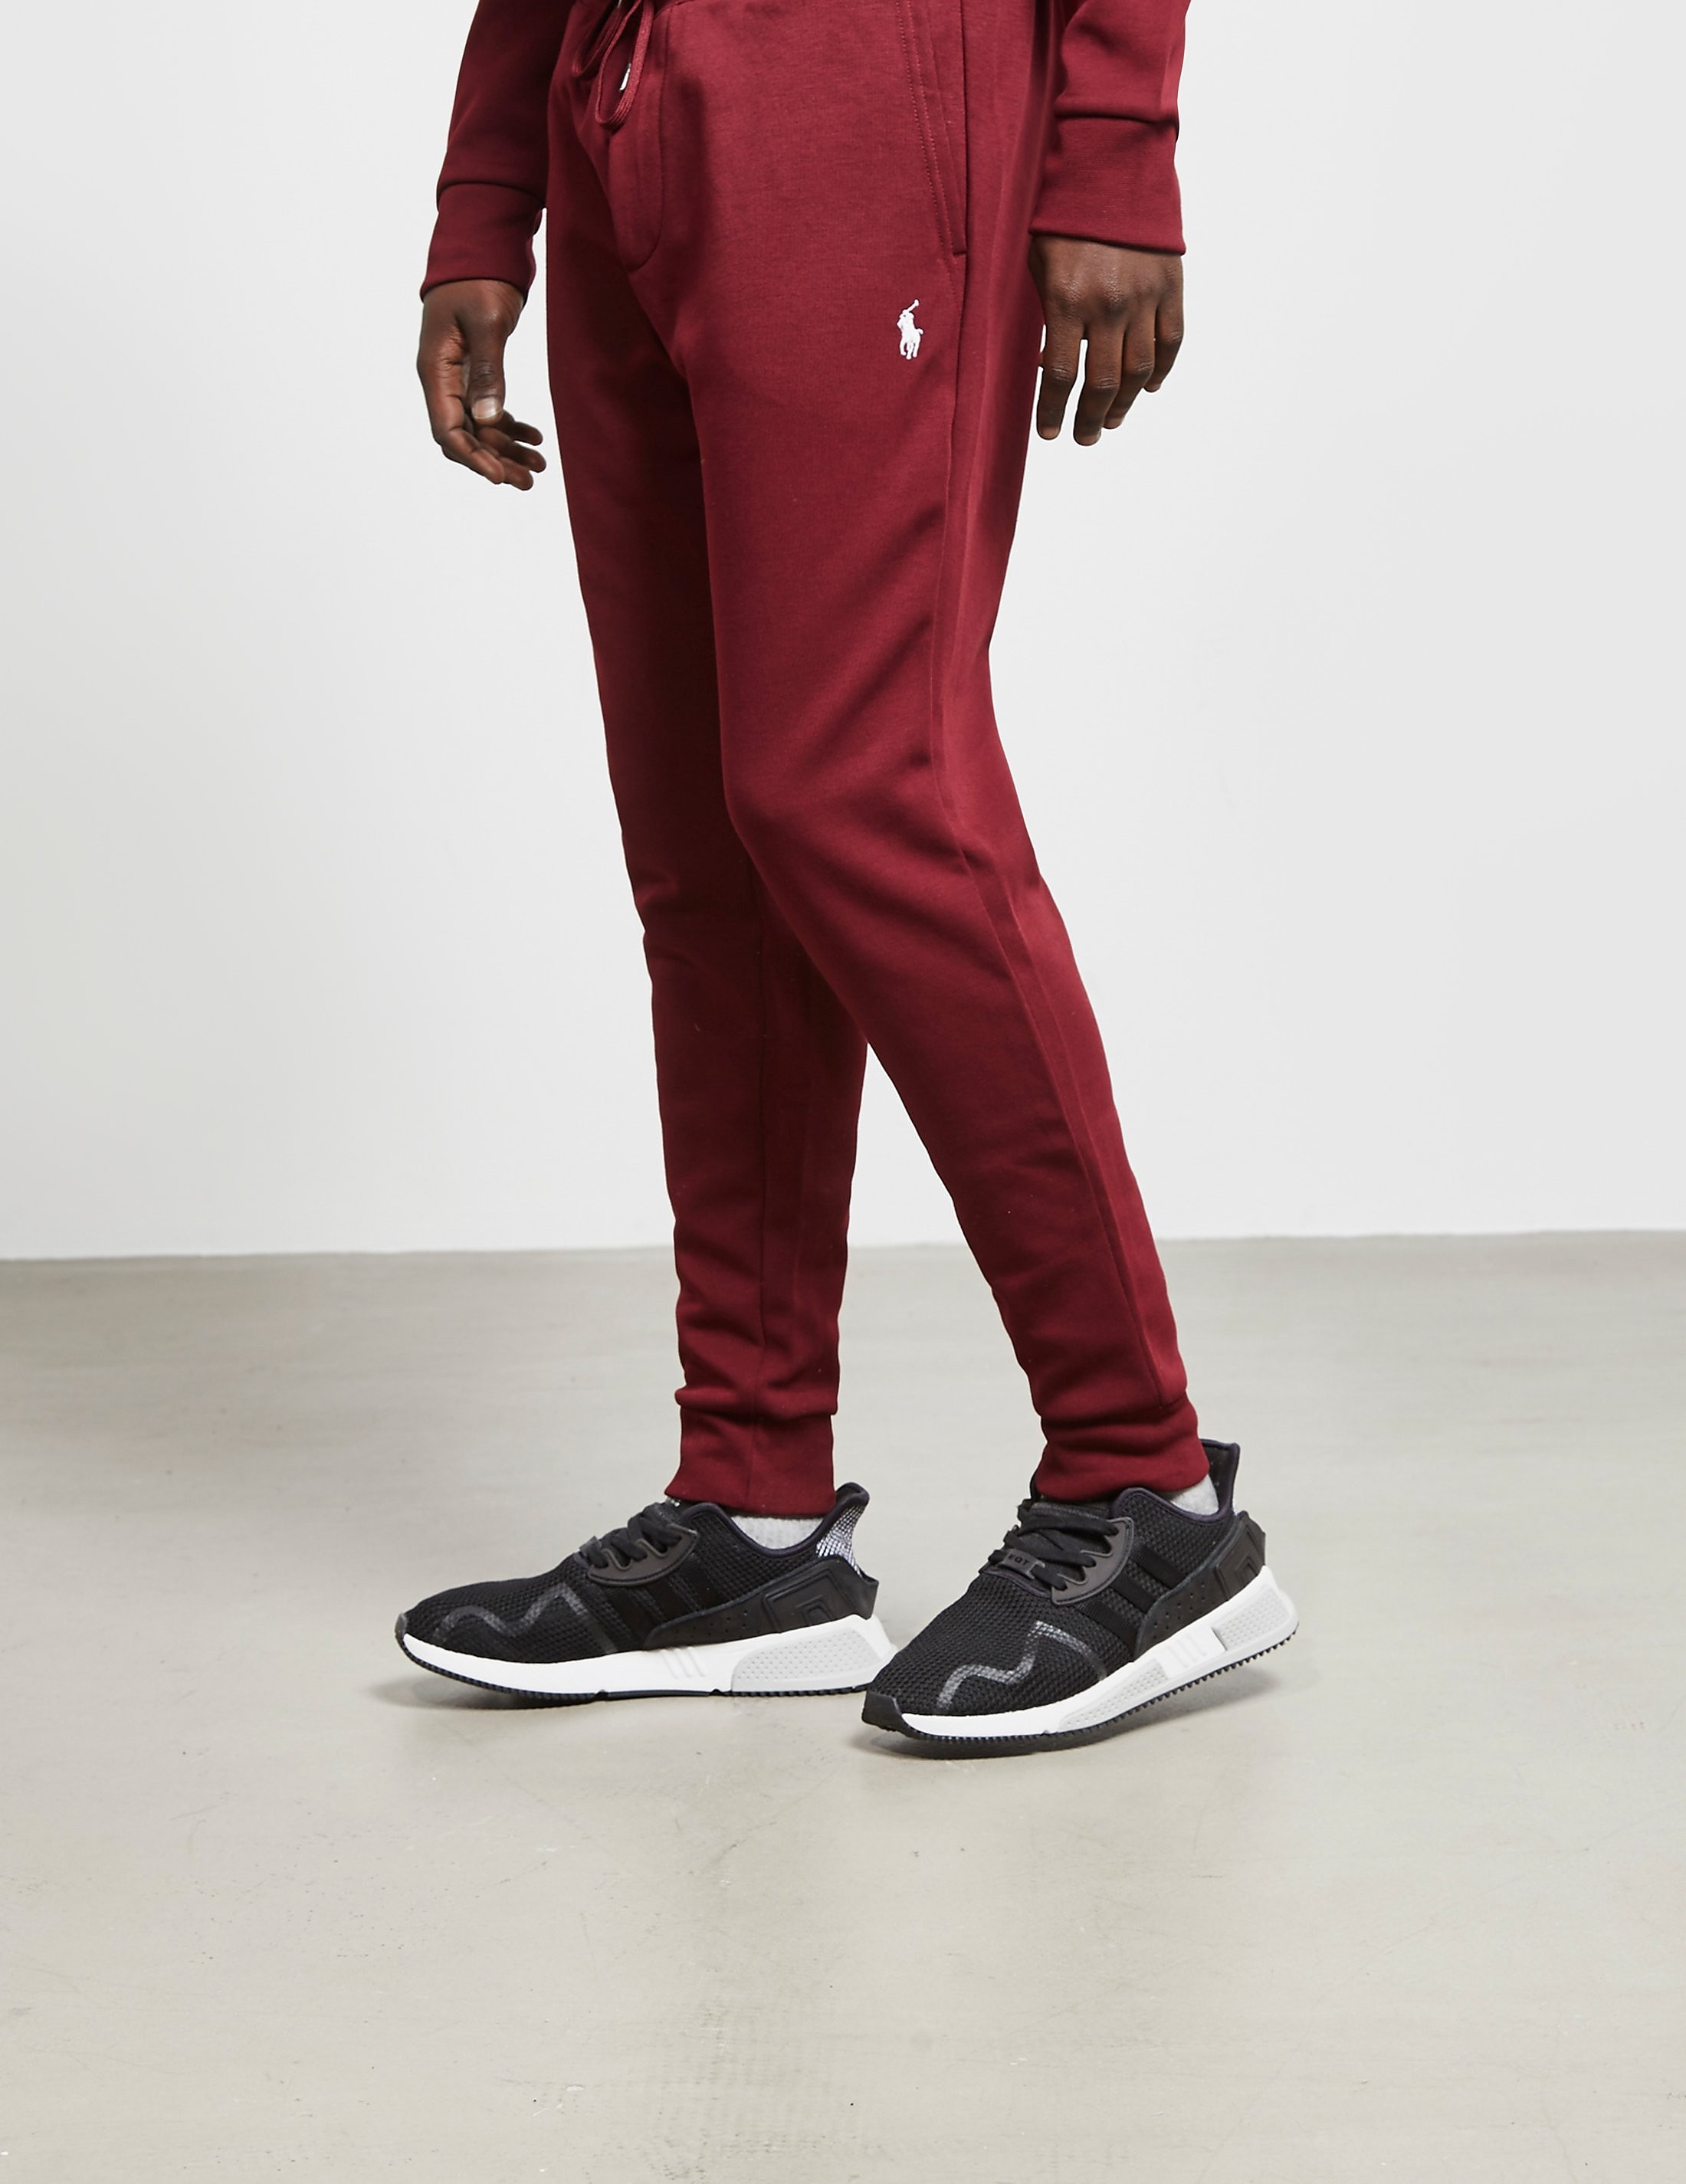 856f159b7856 Mens Polo Ralph Lauren Tech Fleece Track Pants Red